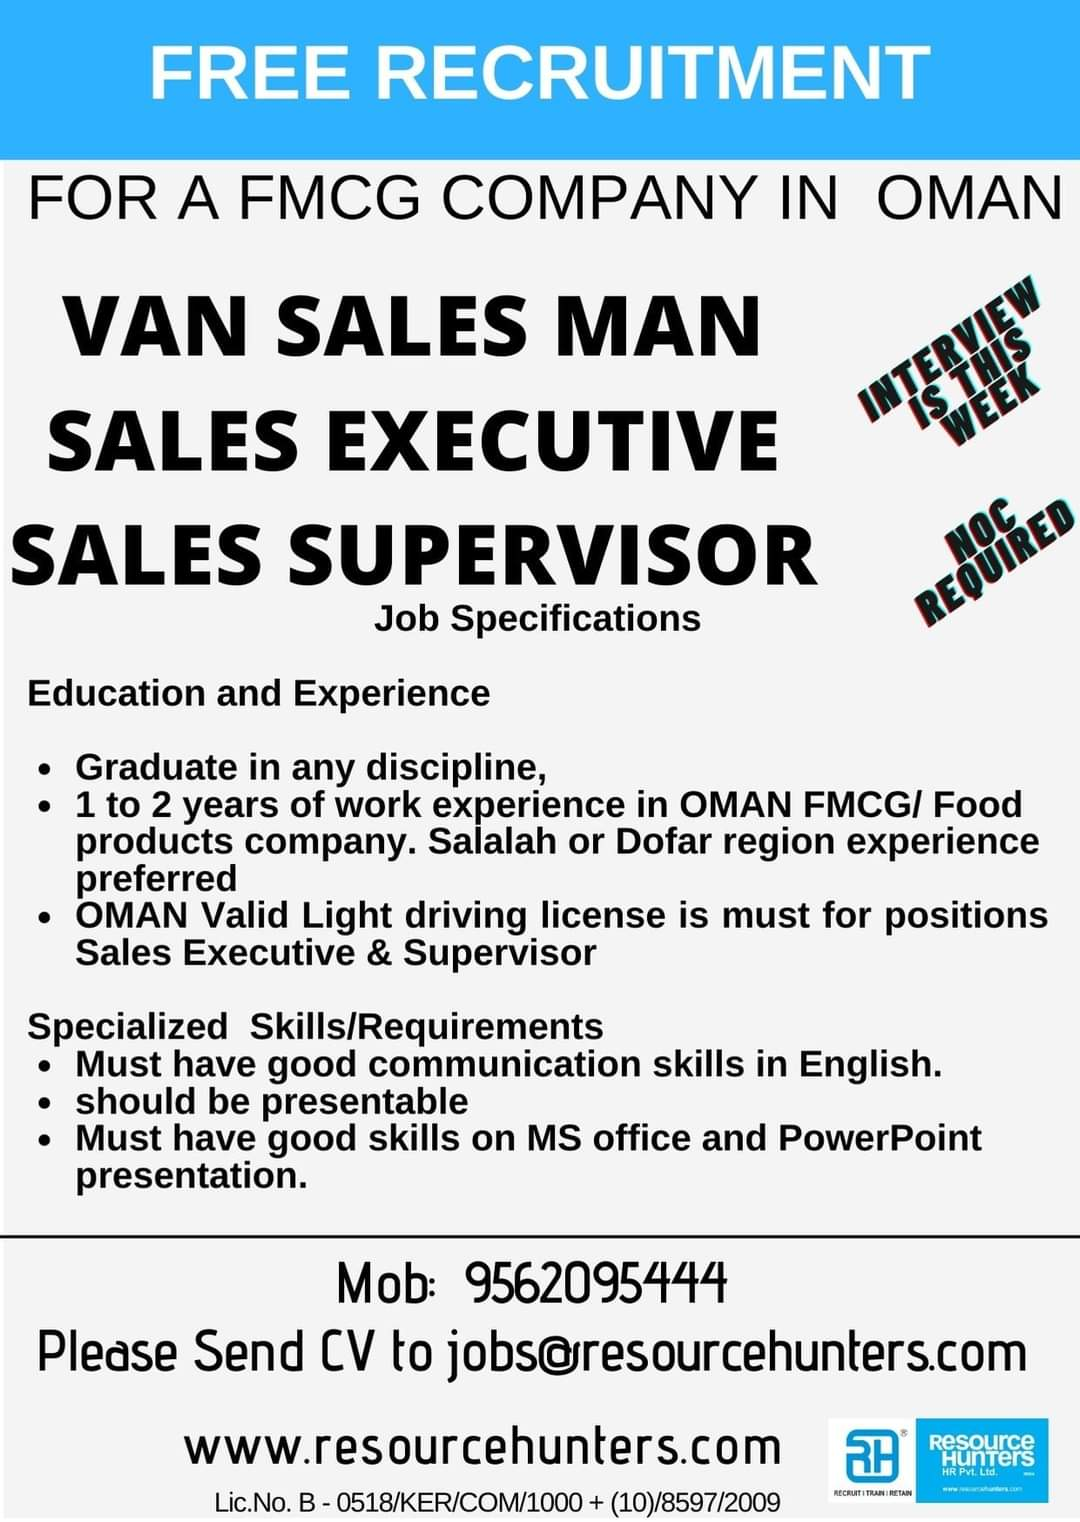 WALK-IN INTERVIEW AT COCHIN FOR OMAN FMCG COMPANY